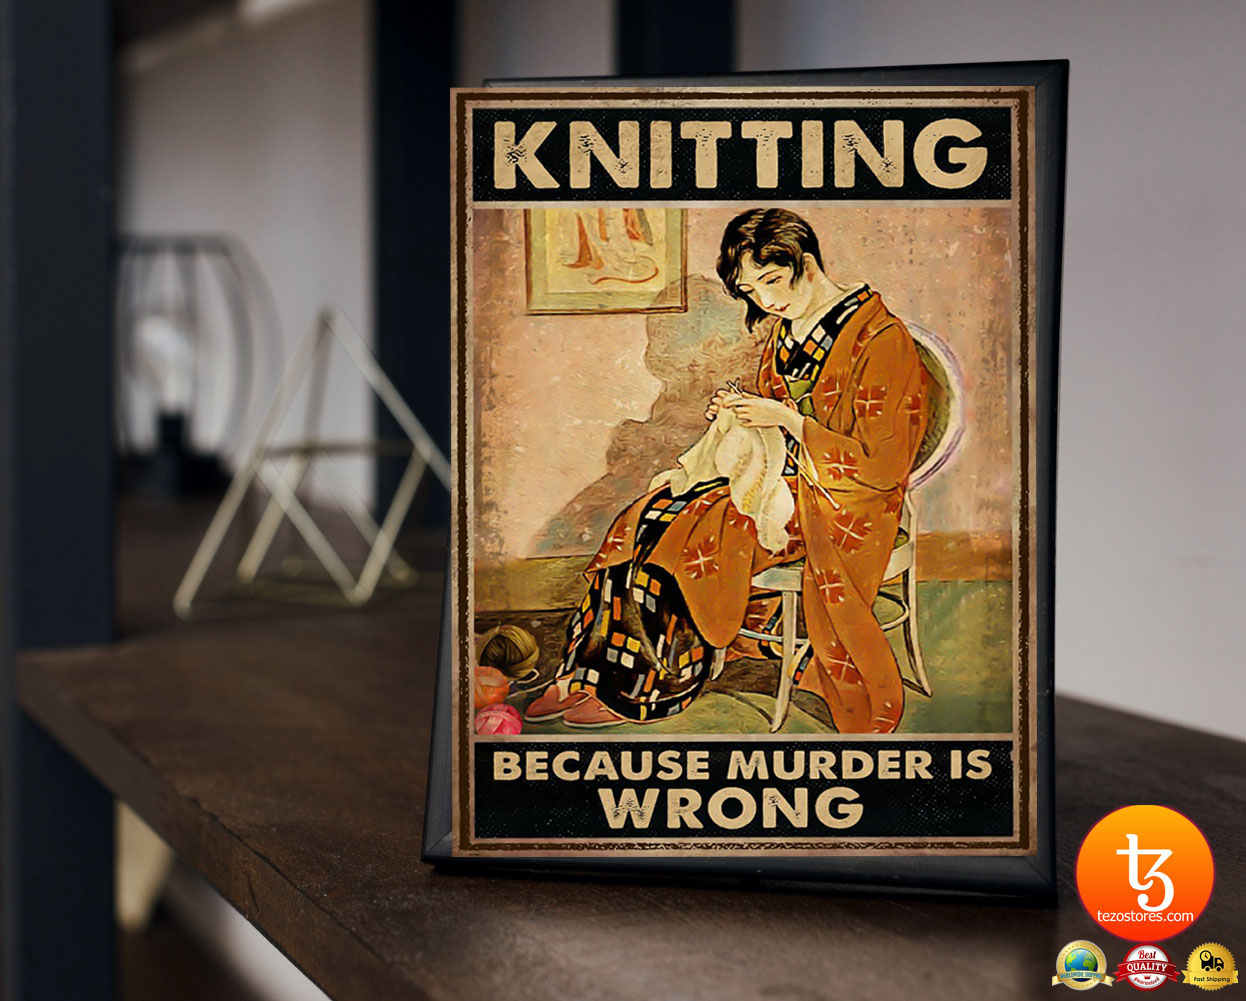 Knitting because murder is wrong poster 2